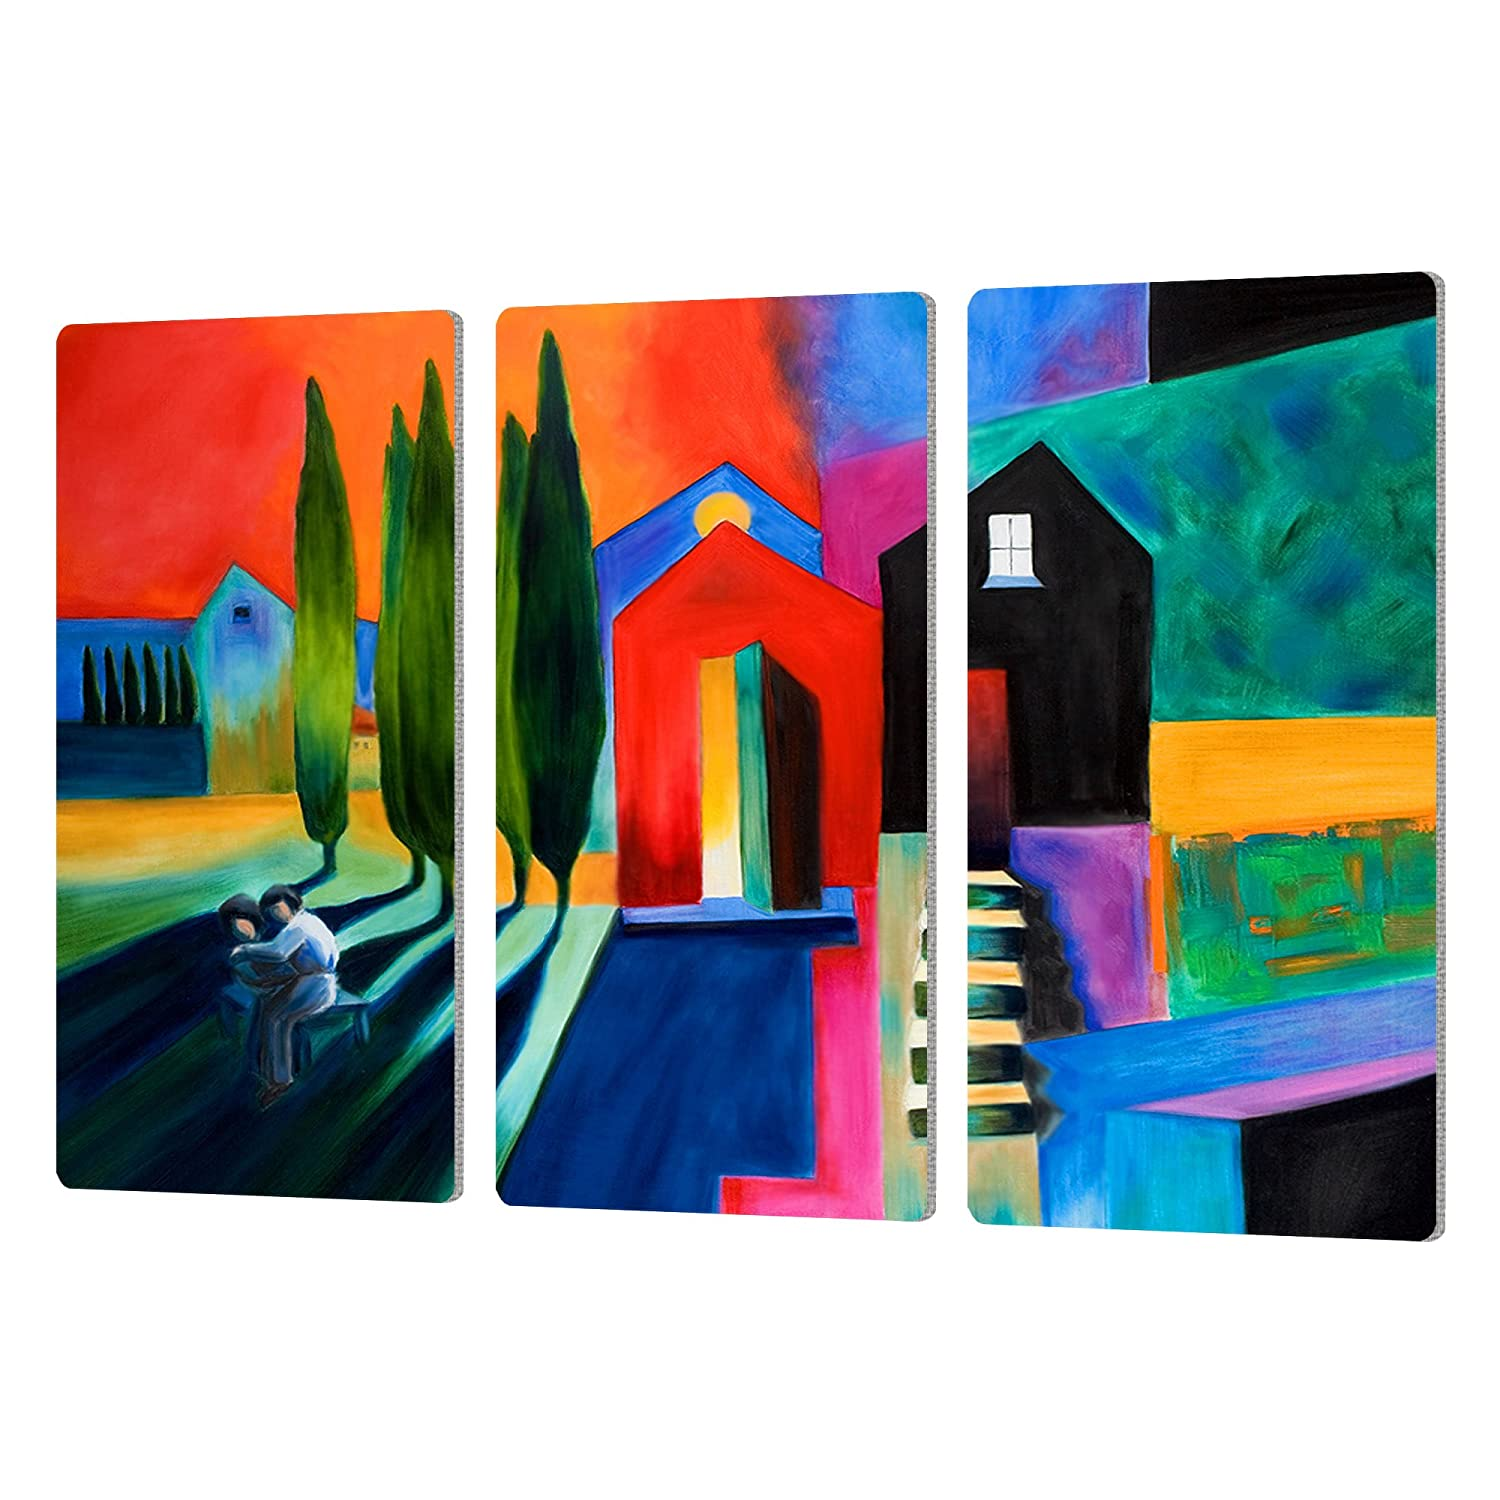 ArtWall Susi Francos Trying to Talk Her in to it Artmetalz 3 Piece Aluminum Print Set 24 by 36